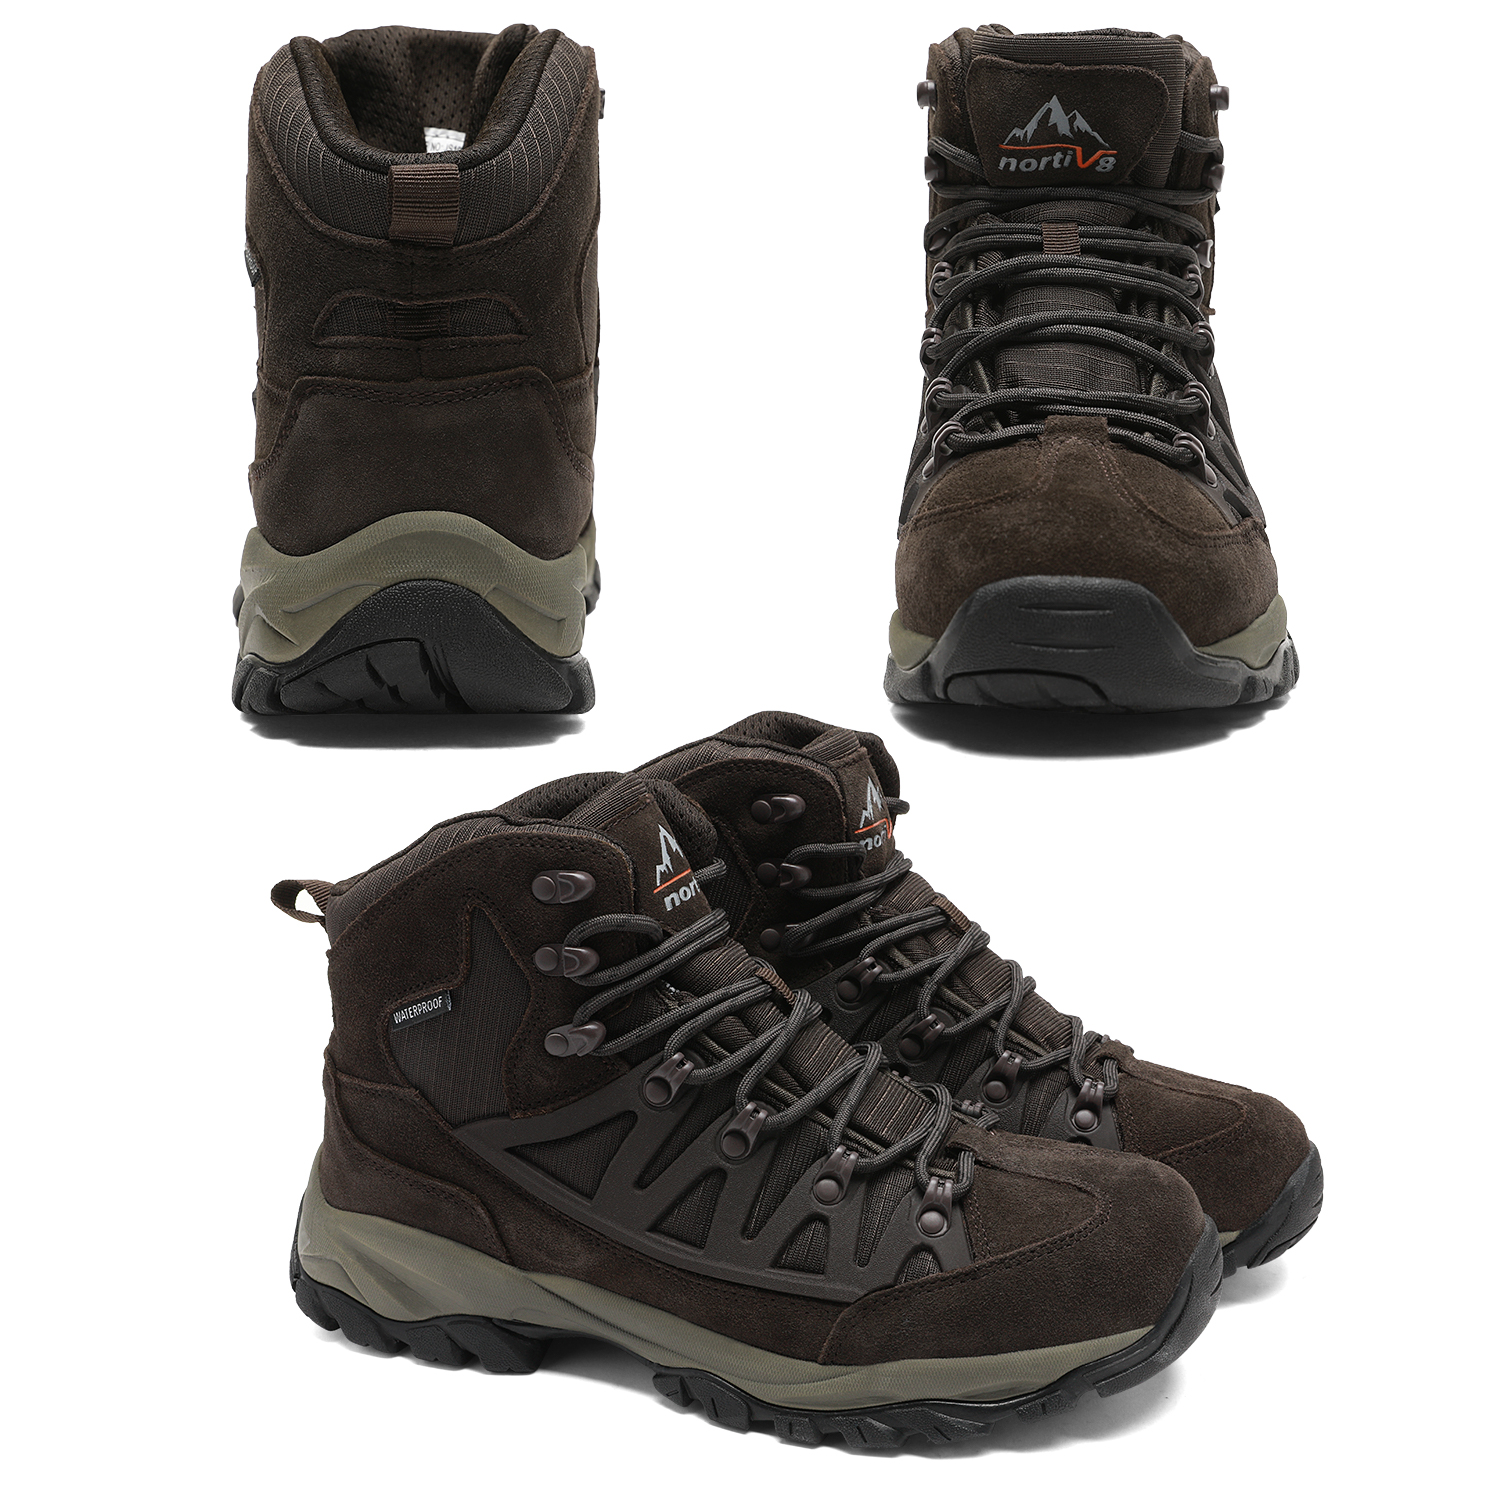 NORTIV-8-Men-039-s-Ankle-Waterproof-Hiking-Boots-Lightweight-Backpacking-Work-Shoes thumbnail 39